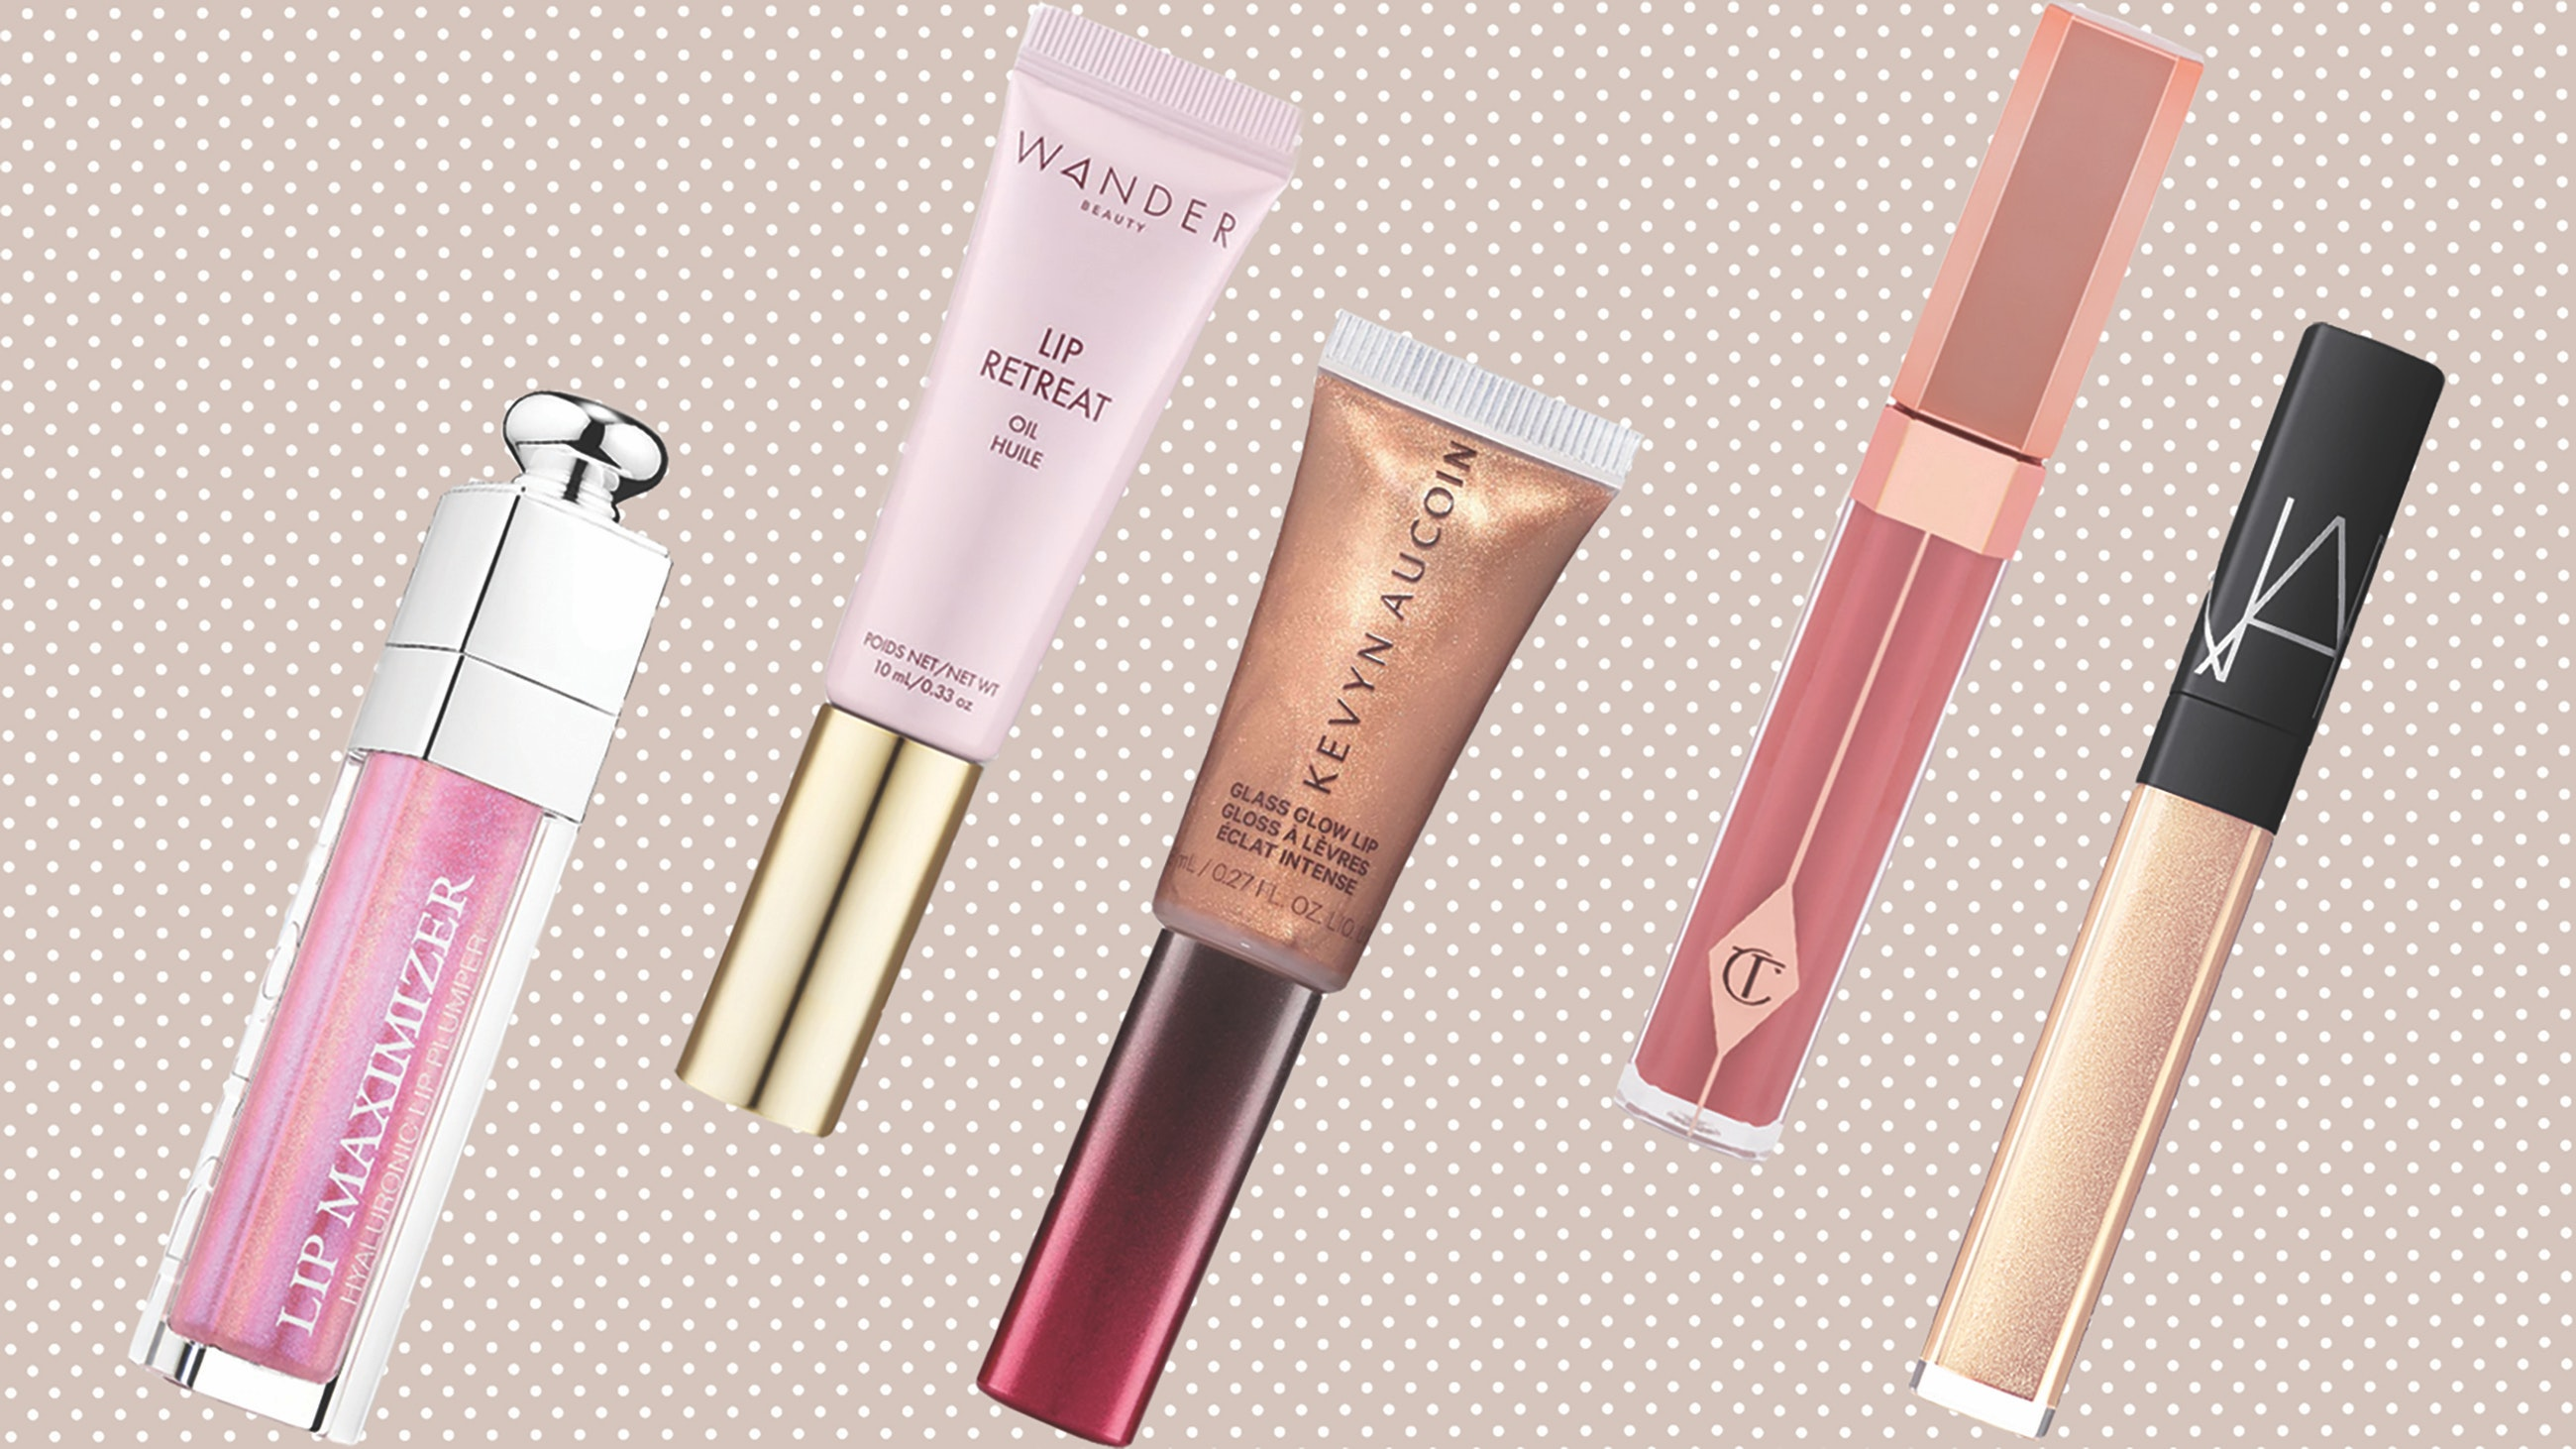 Our Editors Are Totally Hooked on These 8 Luxurious Lip Glosses